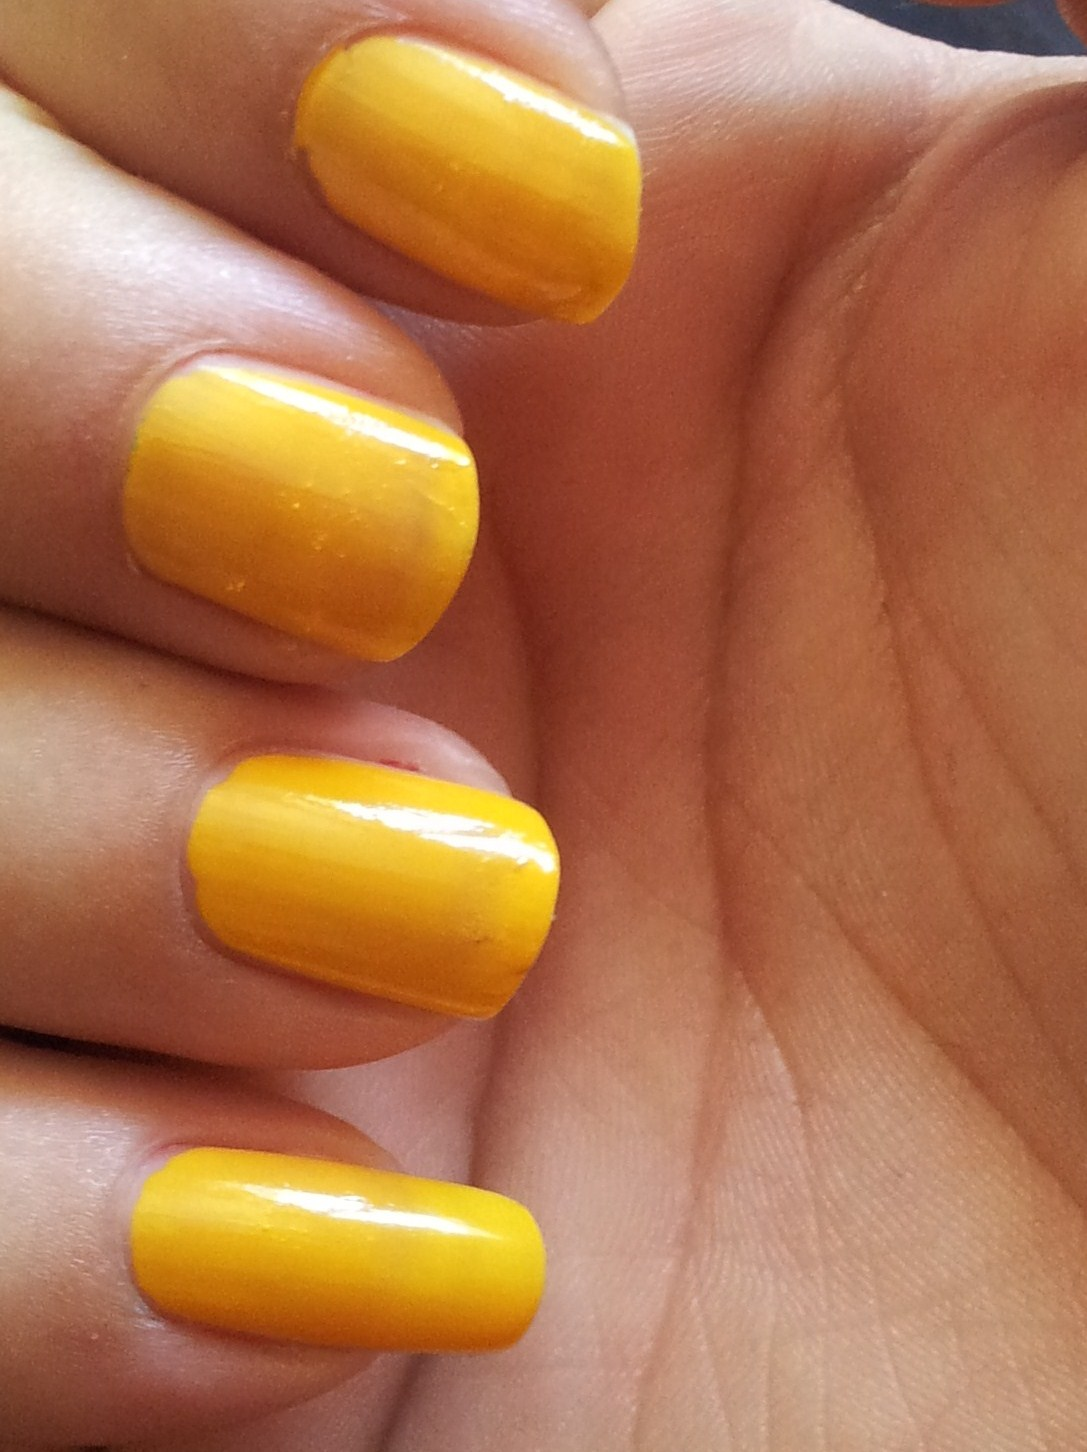 Lilly in Love: [Nails] Ombre / Farbverlauf